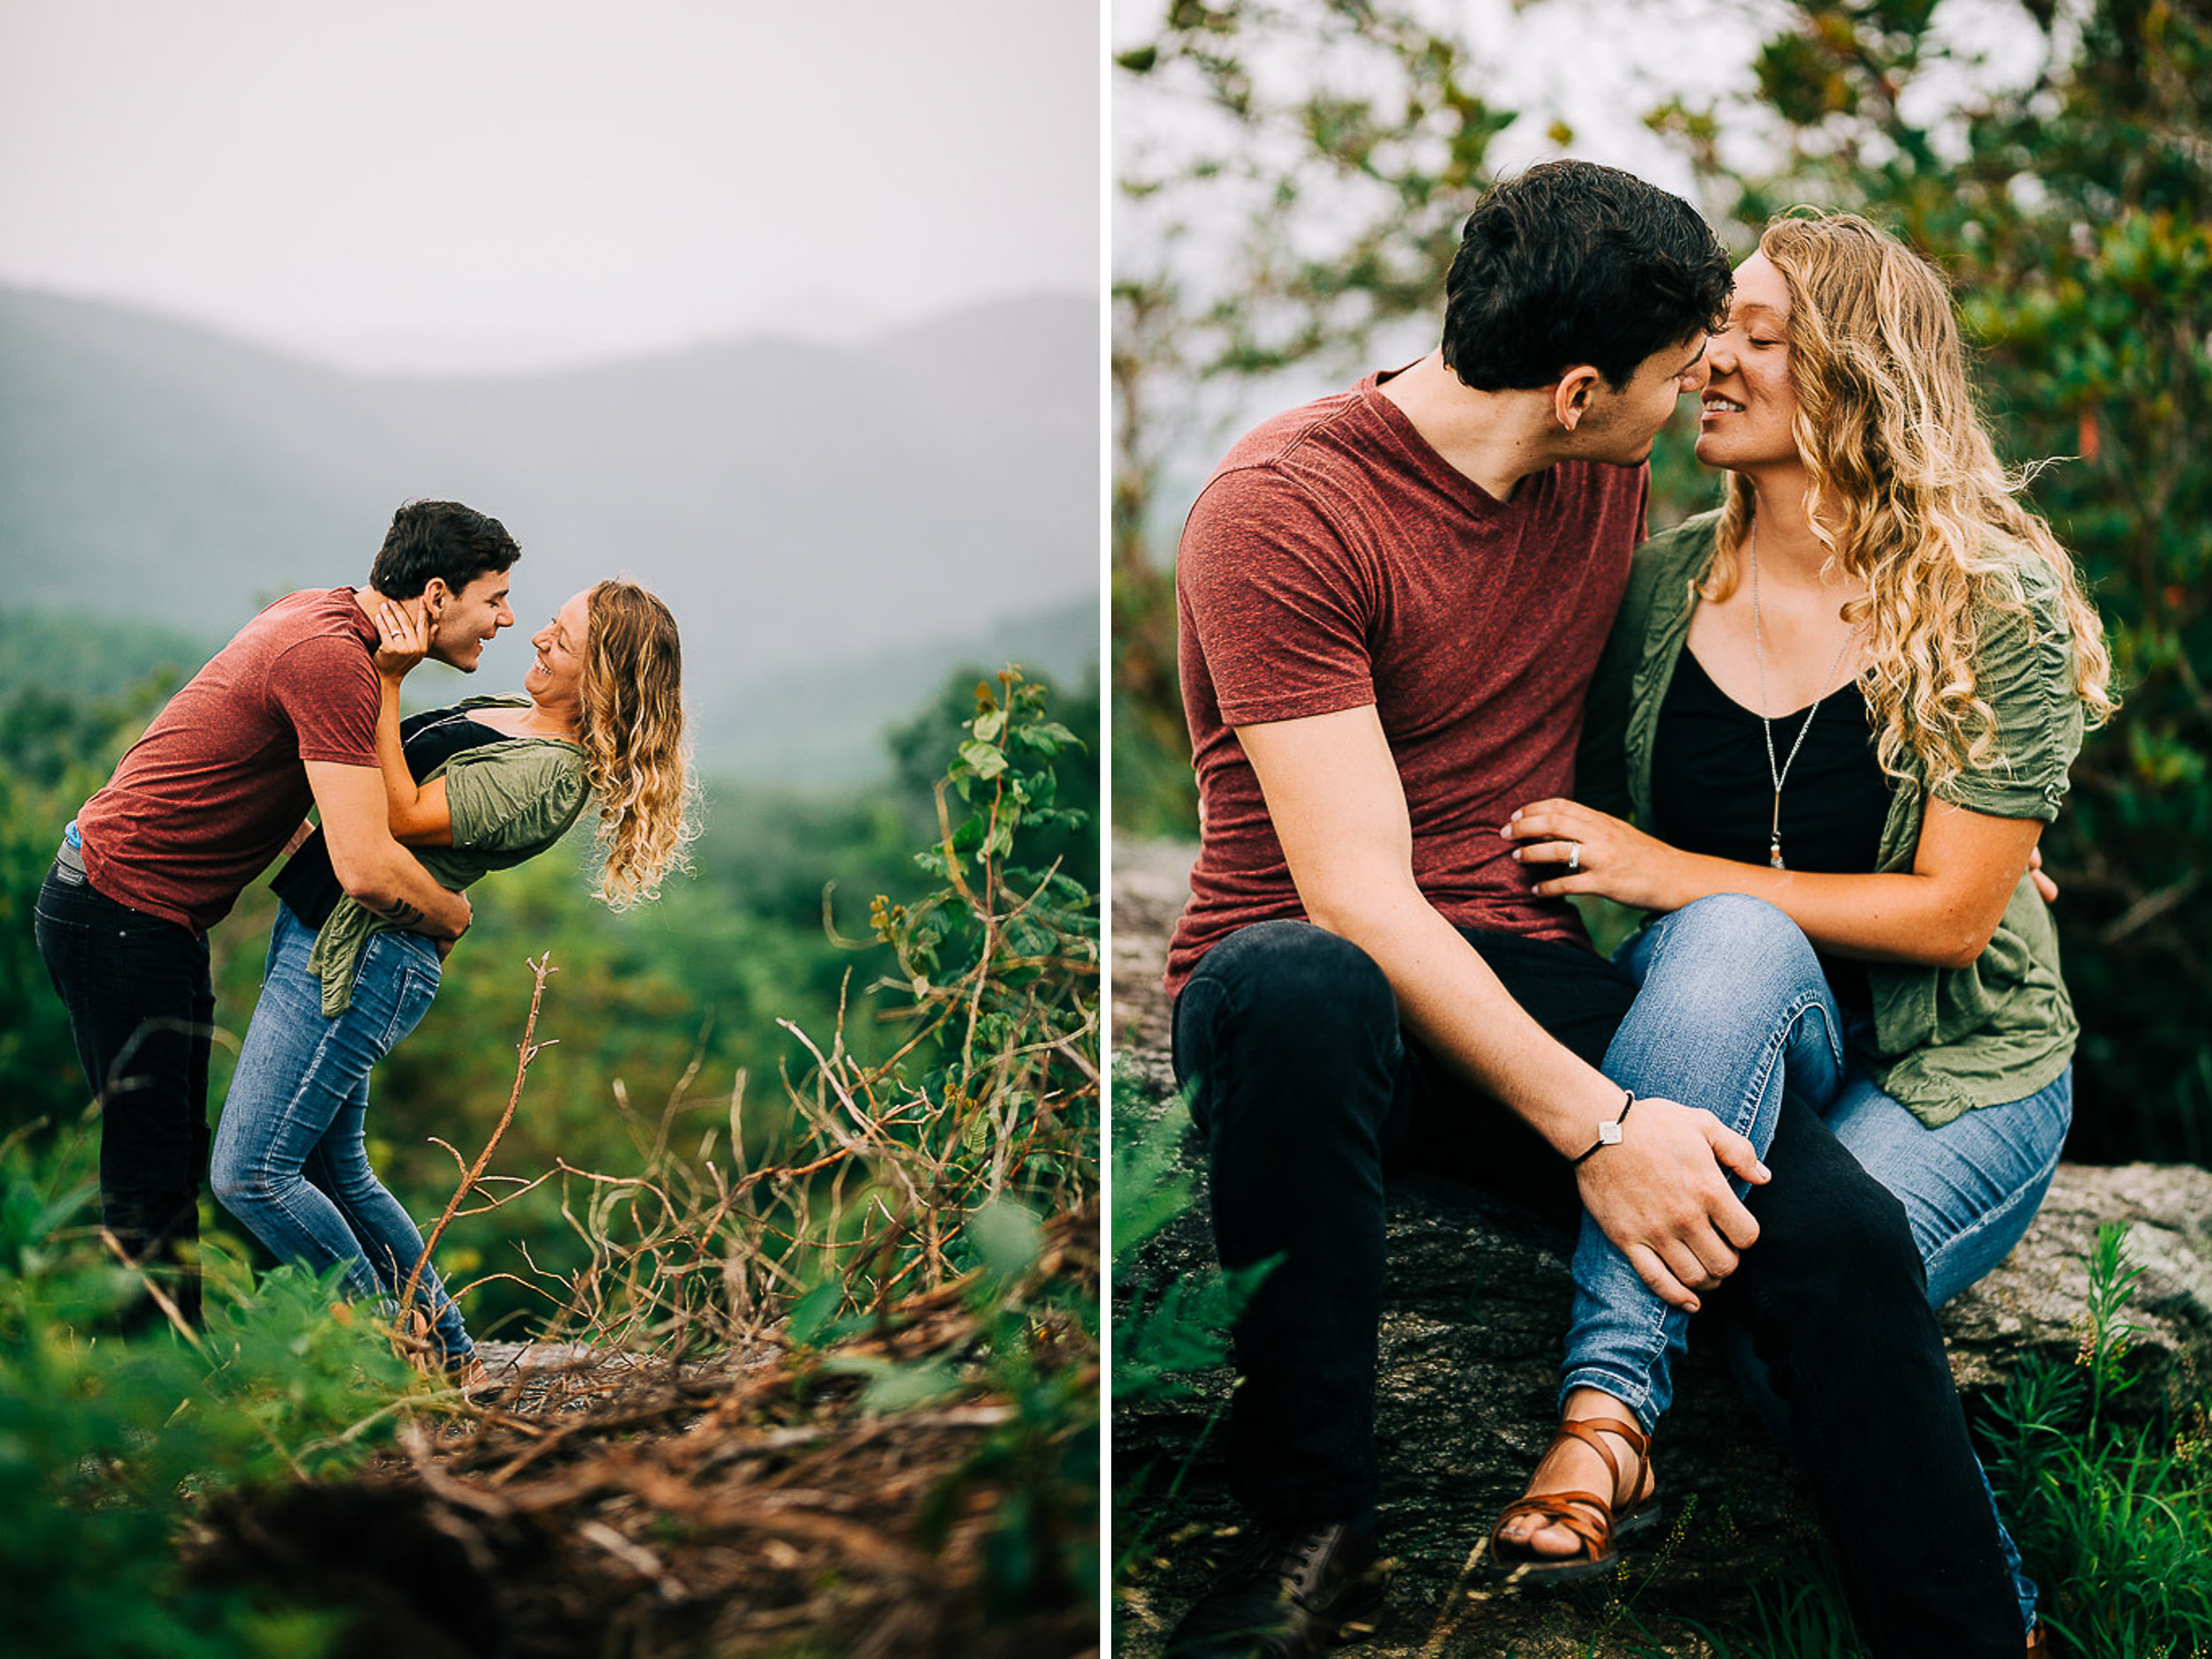 Mountain Engagement, Summer Engaement, Engaged, Engaement Portriats, Engagement Pictures, 03.jpg